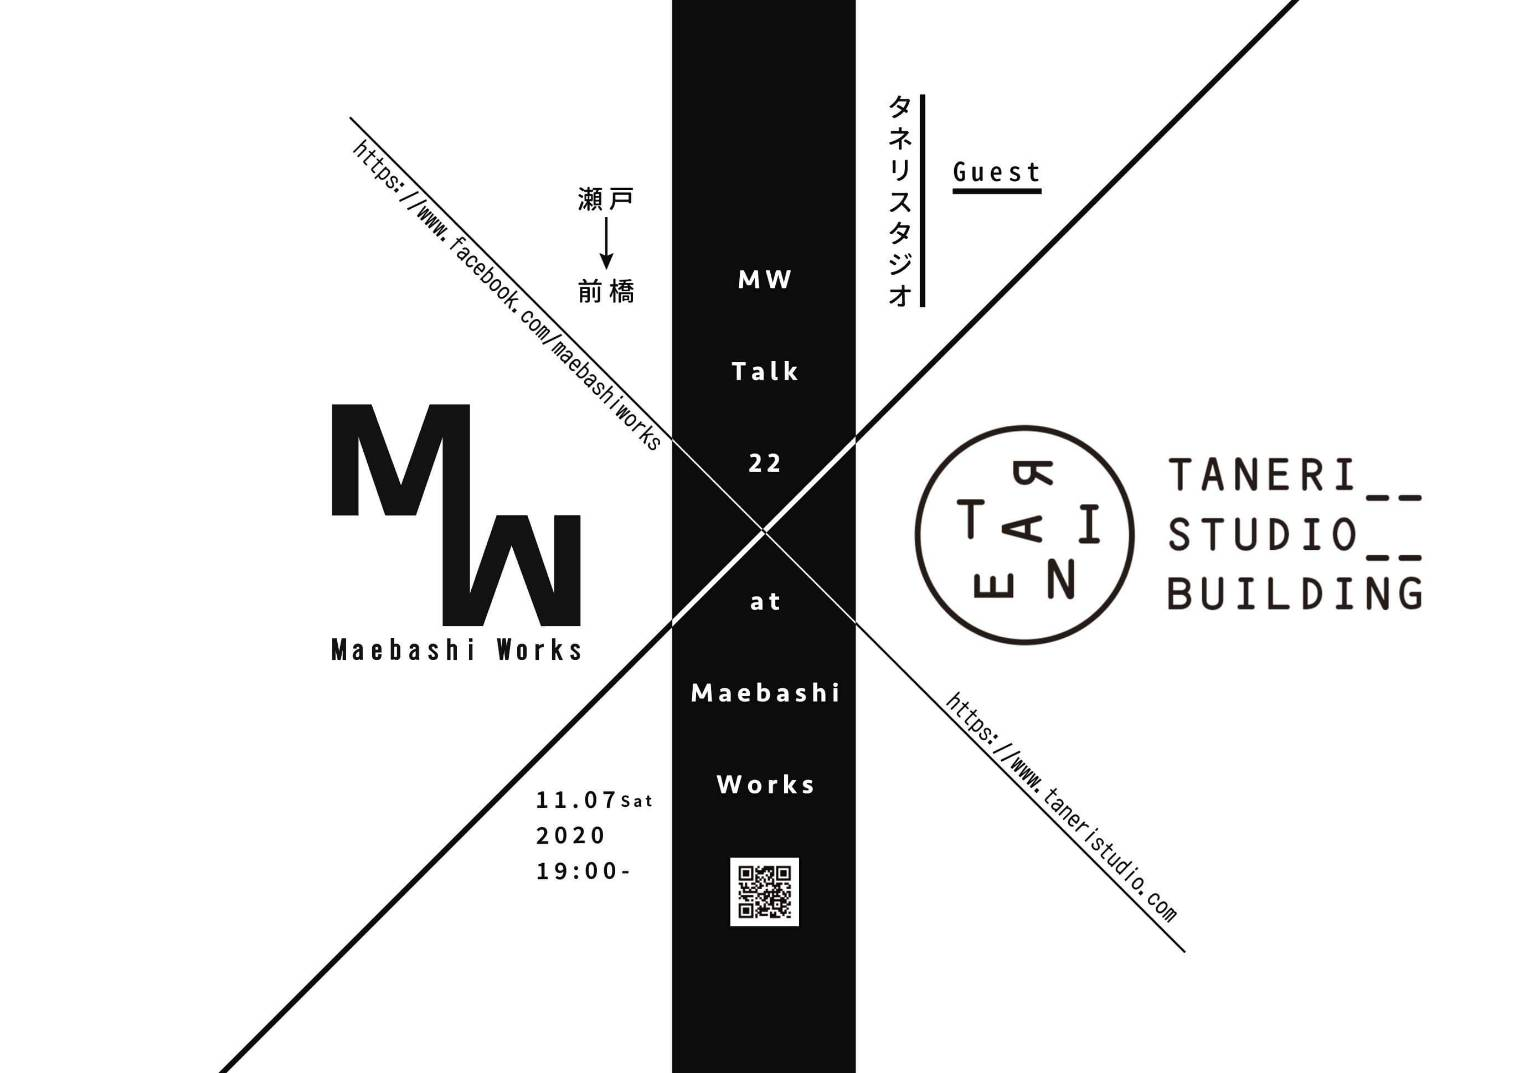 MW Talk 22 at Maebashi Works Guest タネリスタジオ